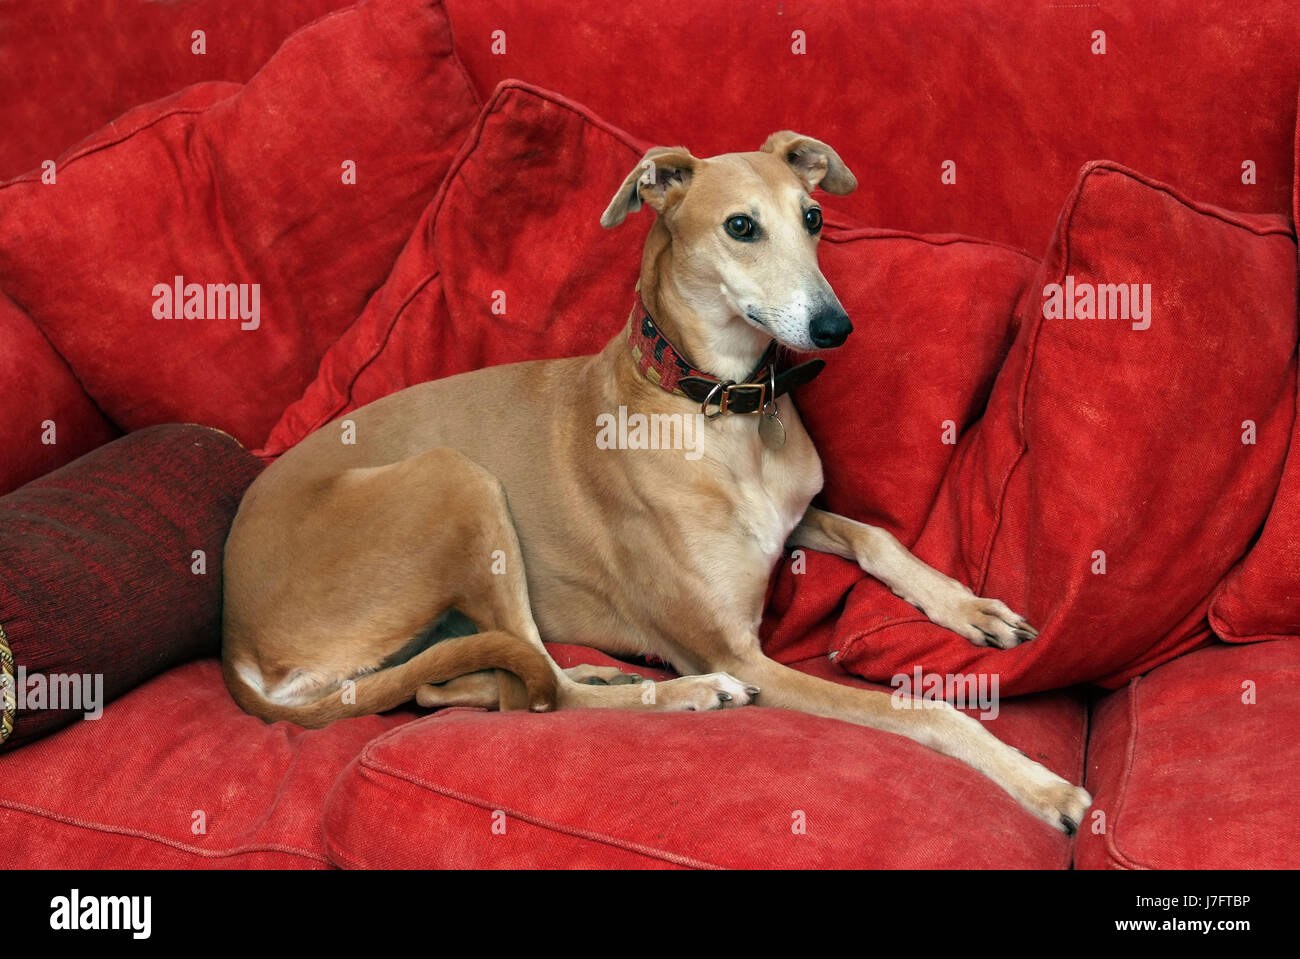 A whippet  lying on a red sofa amongst red cushions - Stock Image